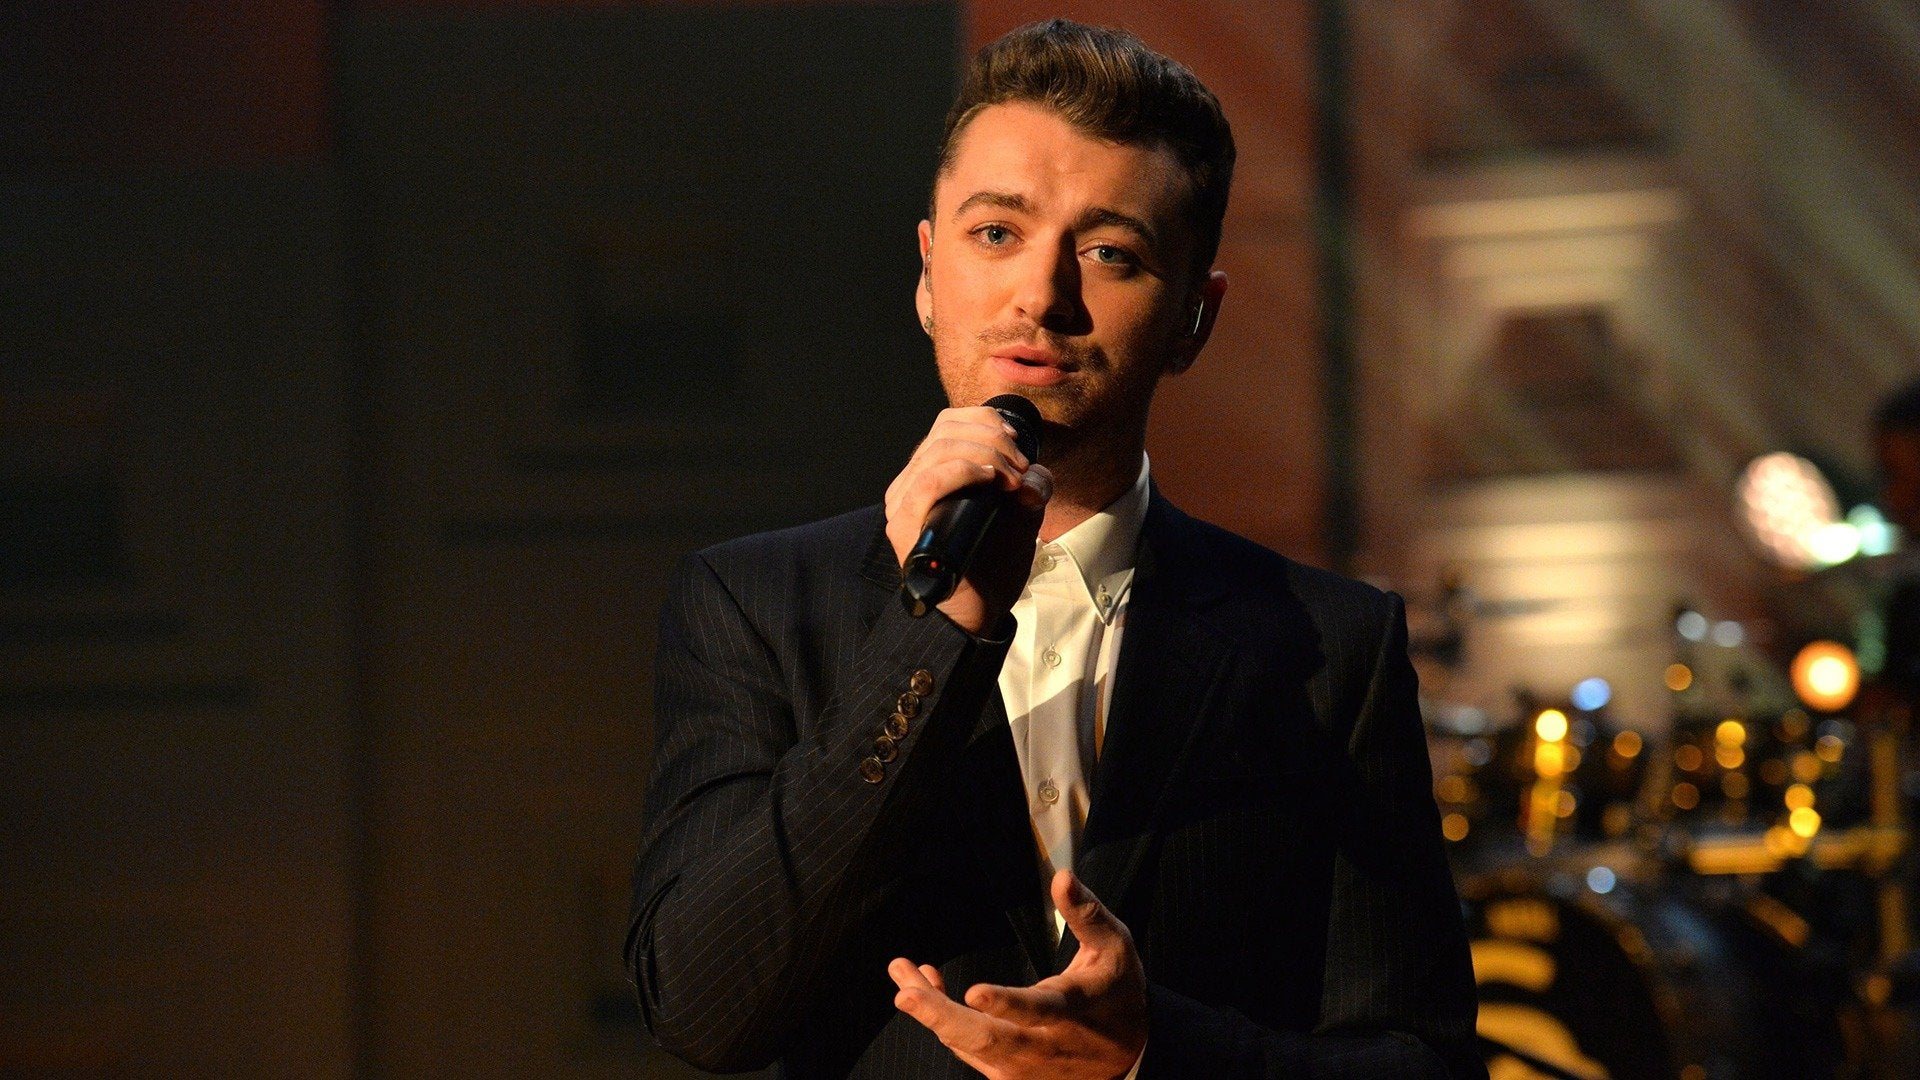 Sam Smith In Concert: Live at the BBC